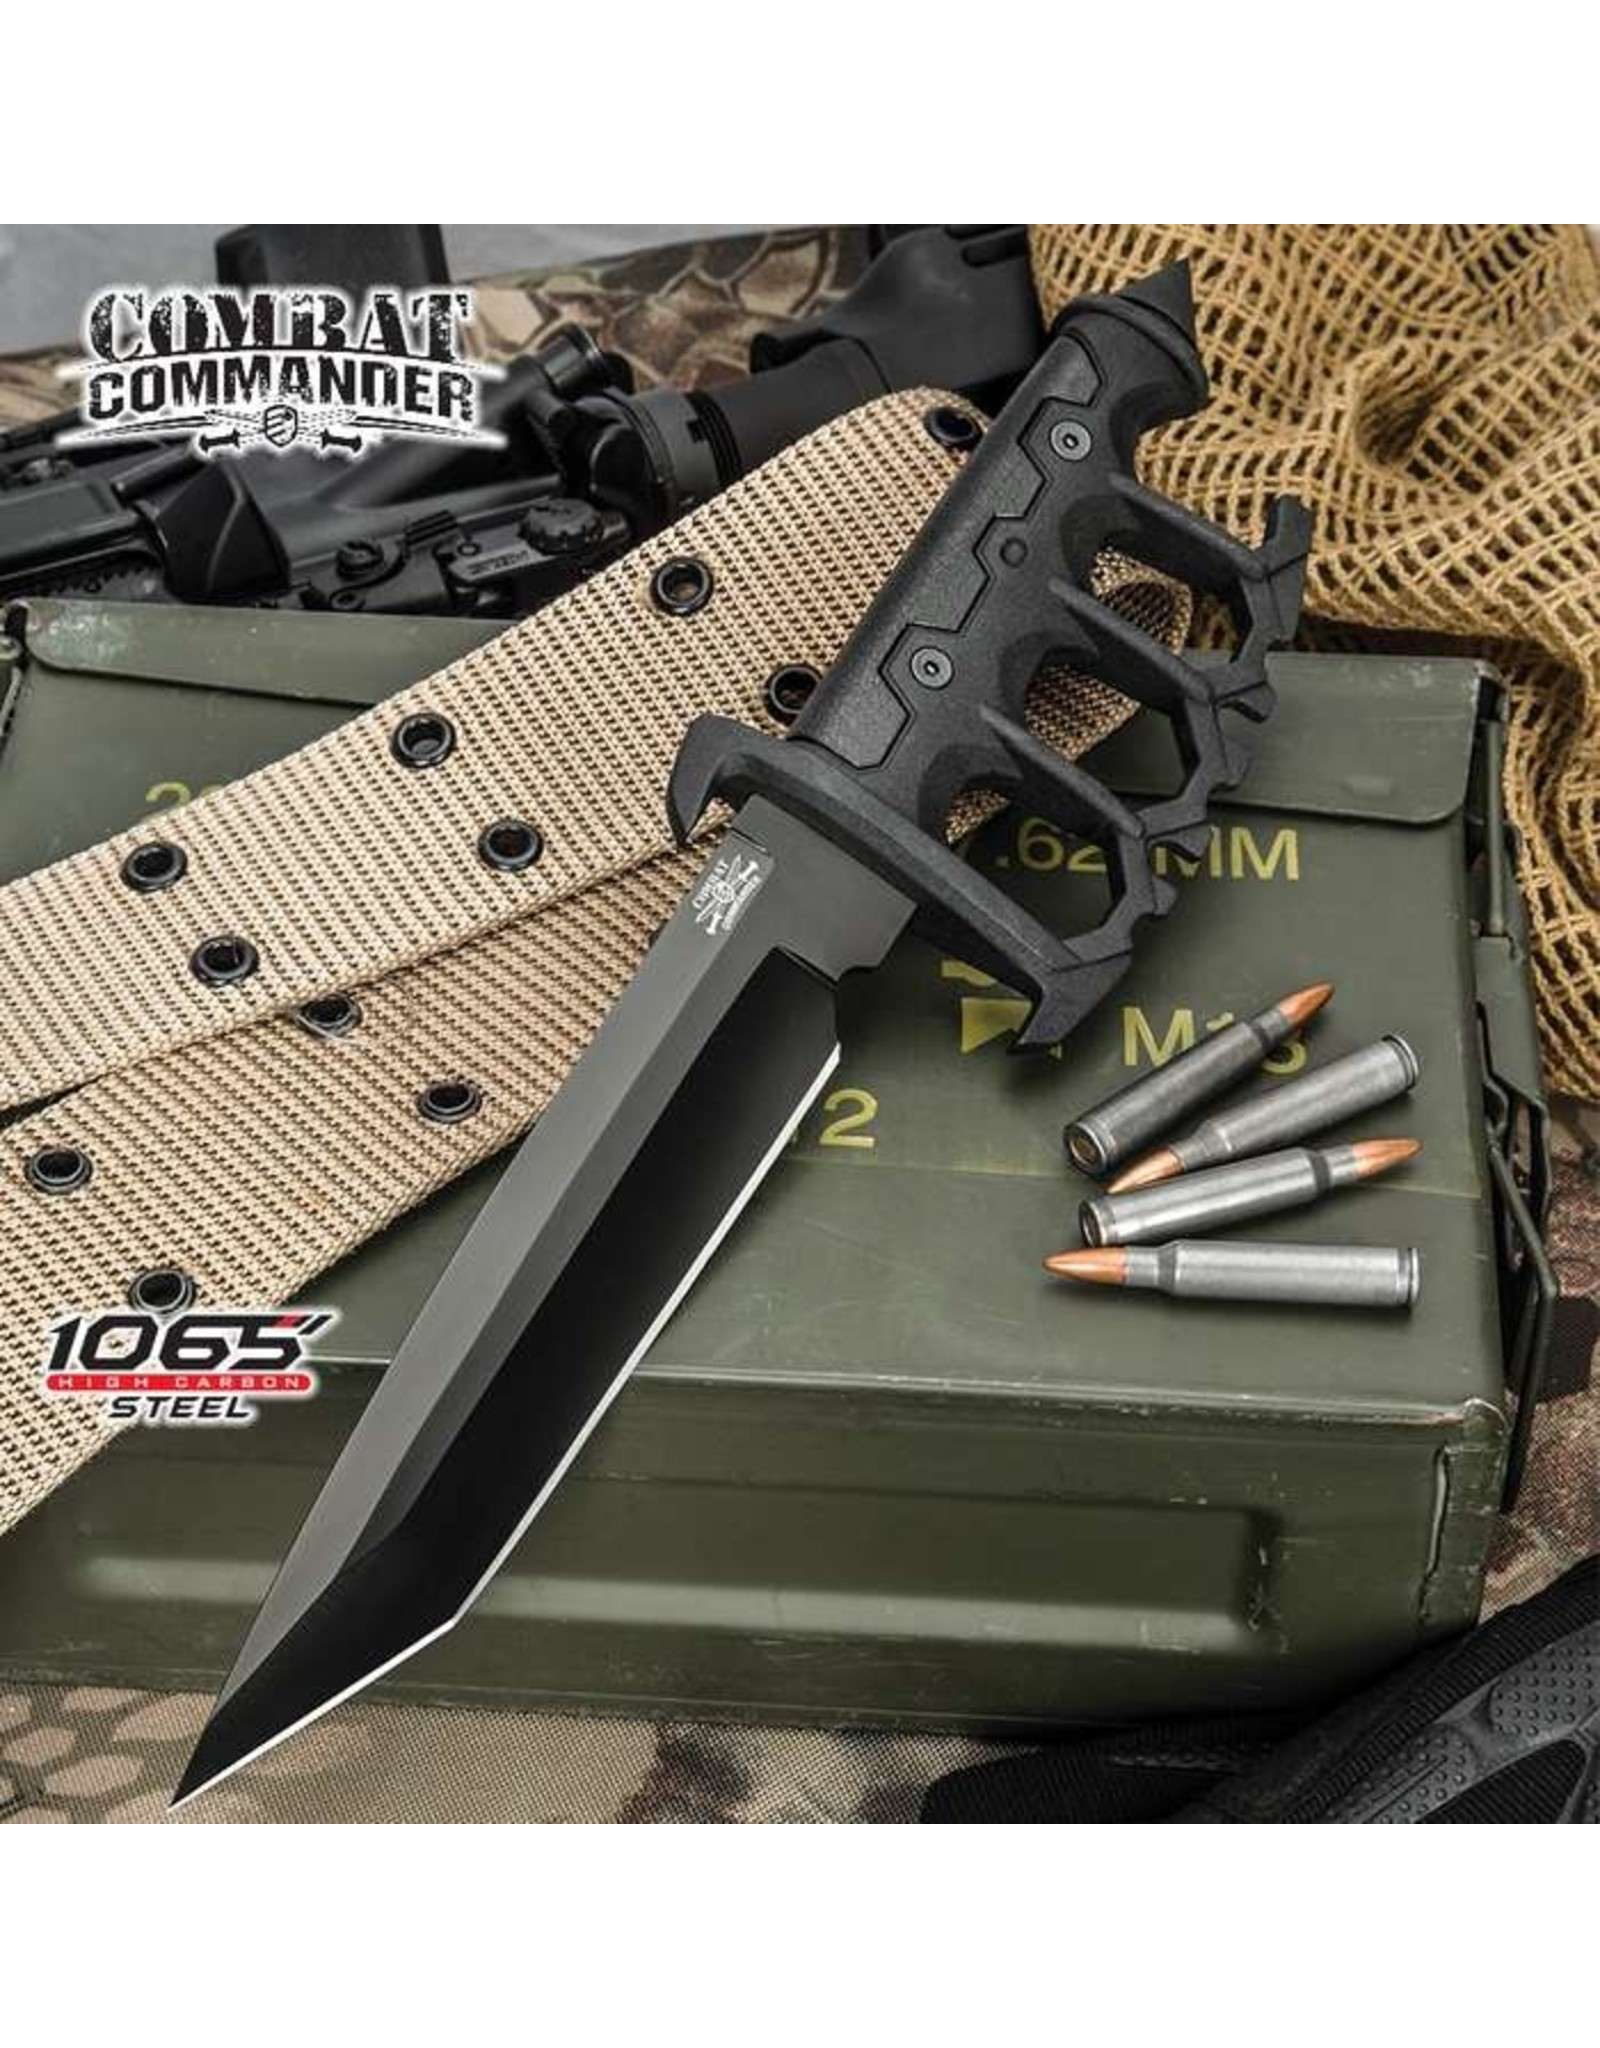 Modern Trench Knife w/ Sheath - Black